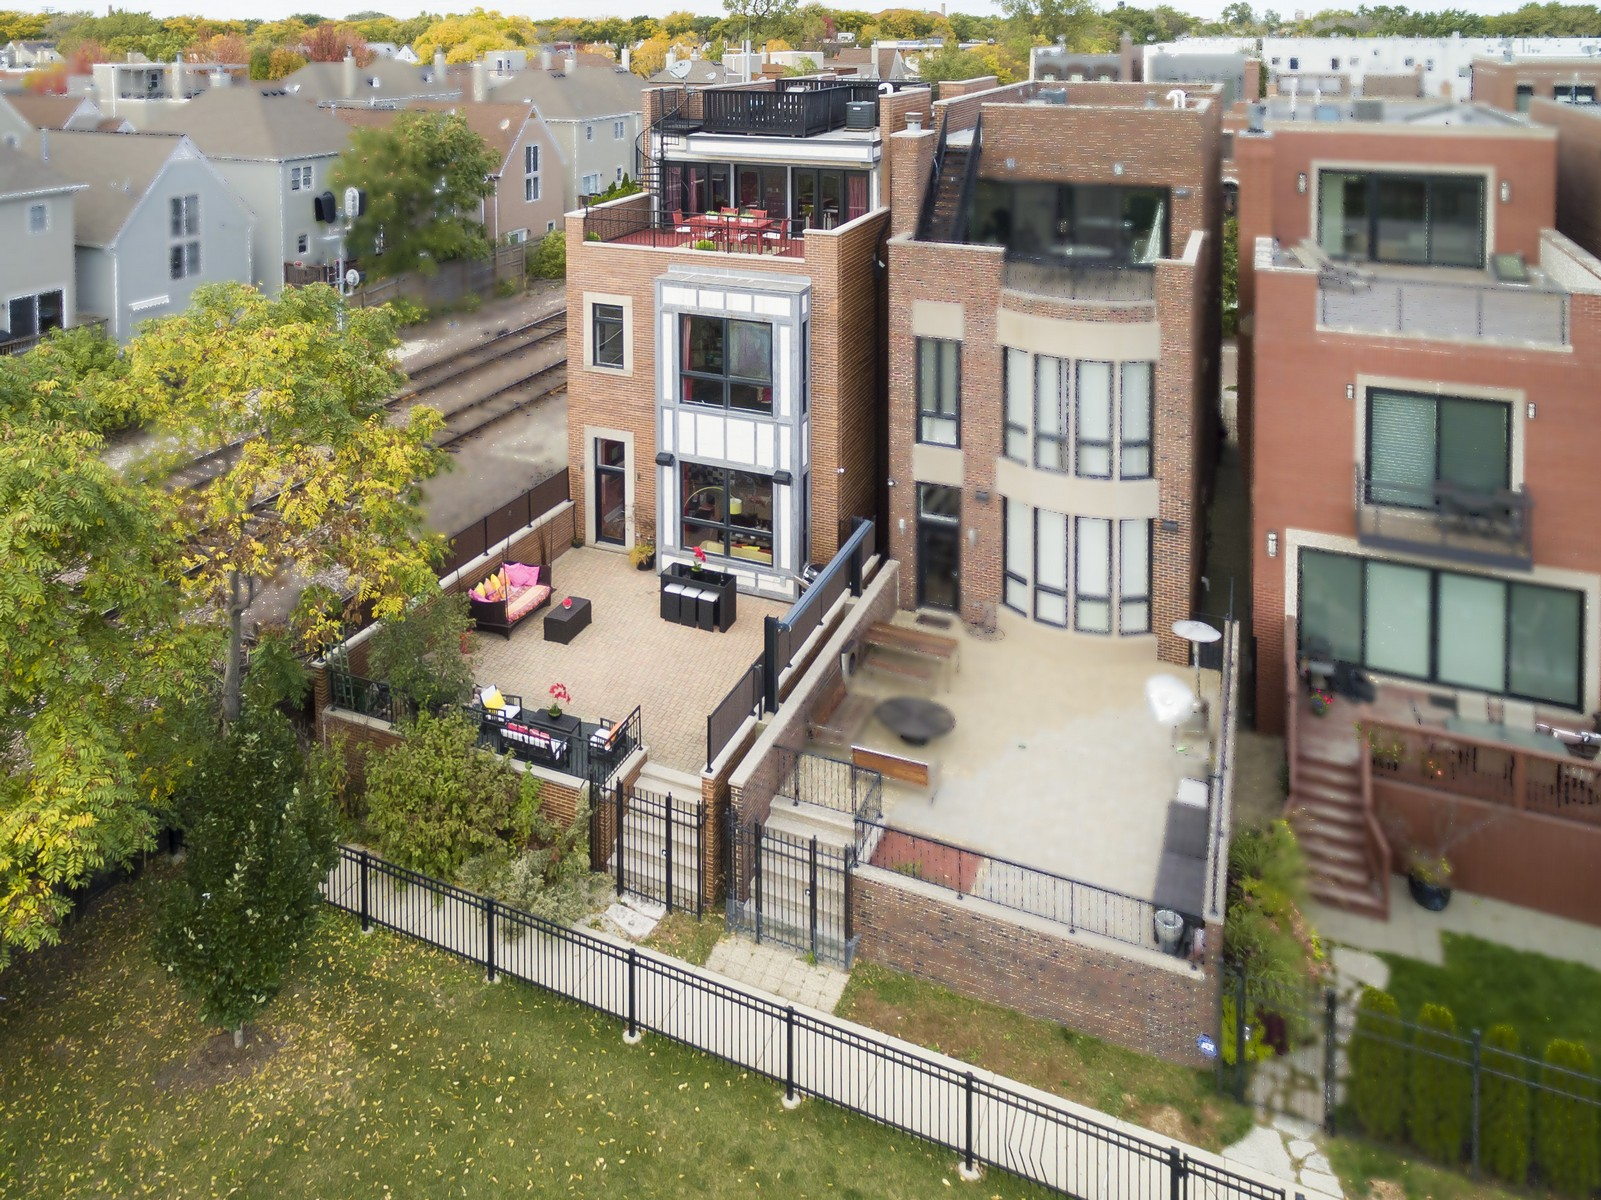 Villa per Vendita alle ore Rarely Available Gem In Burley School District! 1761 W Surf Street Chicago, Illinois, 60657 Stati Uniti